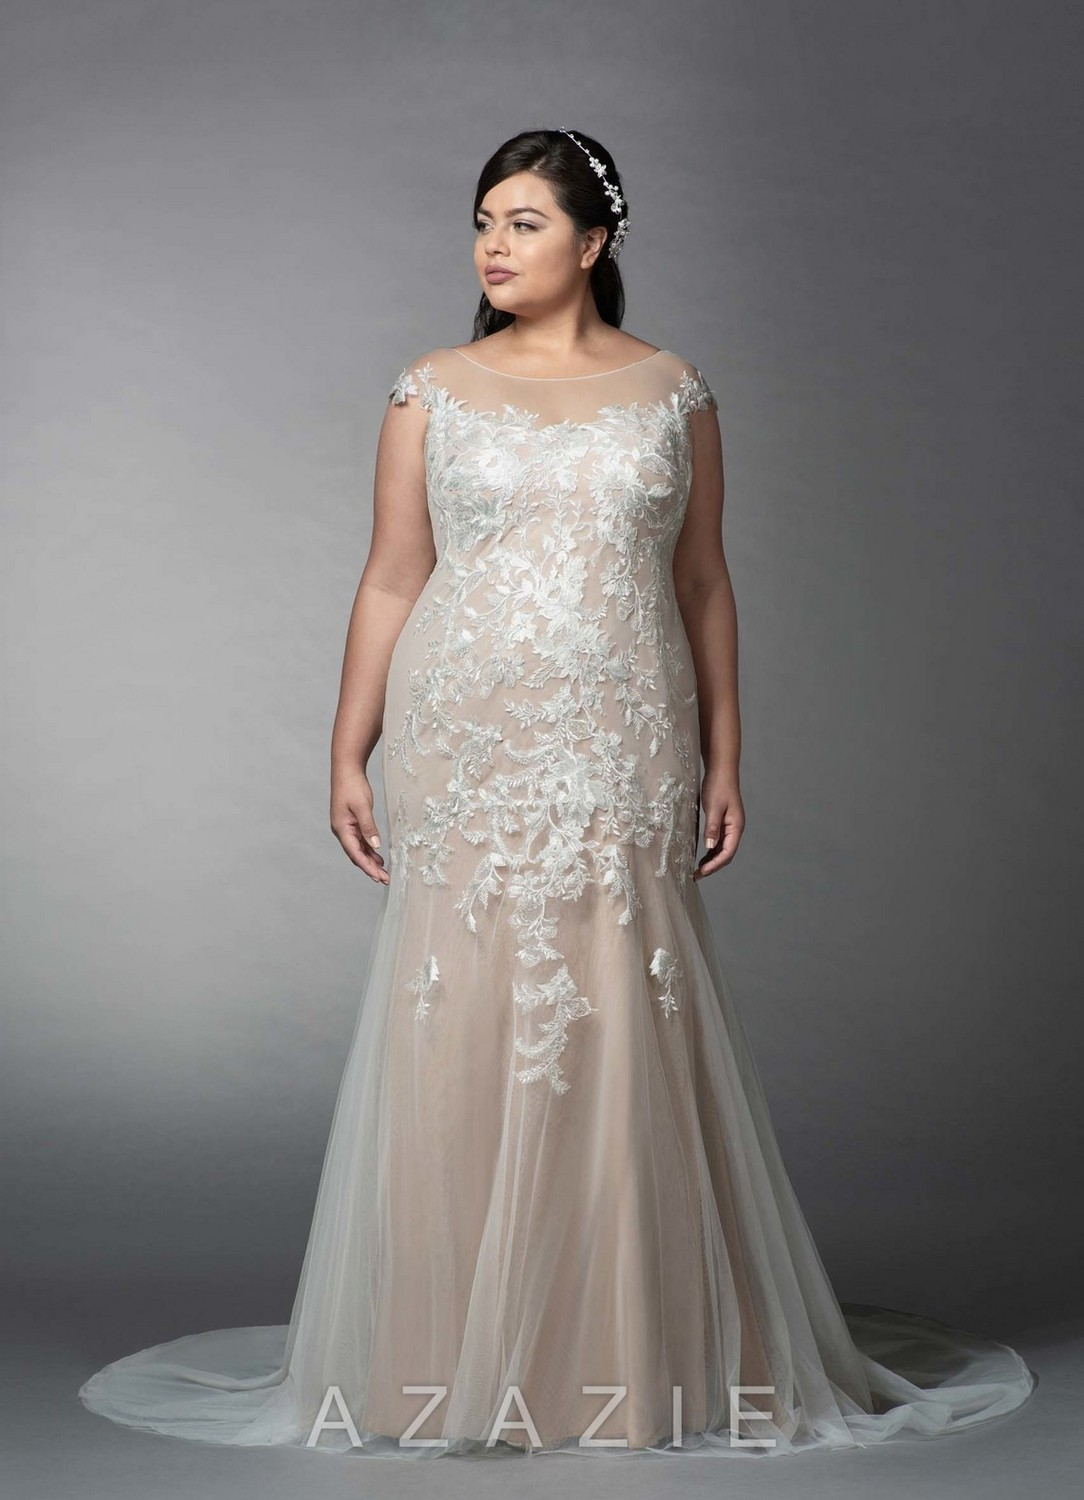 Eudora Plus Size Wedding Dress at Azazie